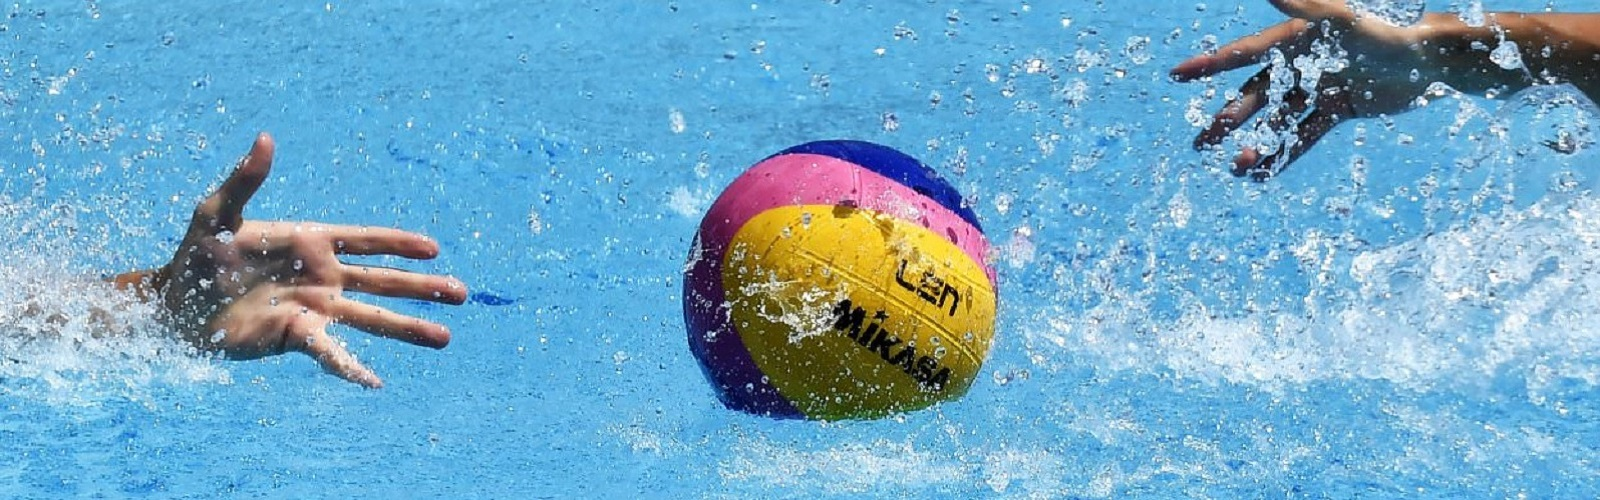 waterpolo-slider